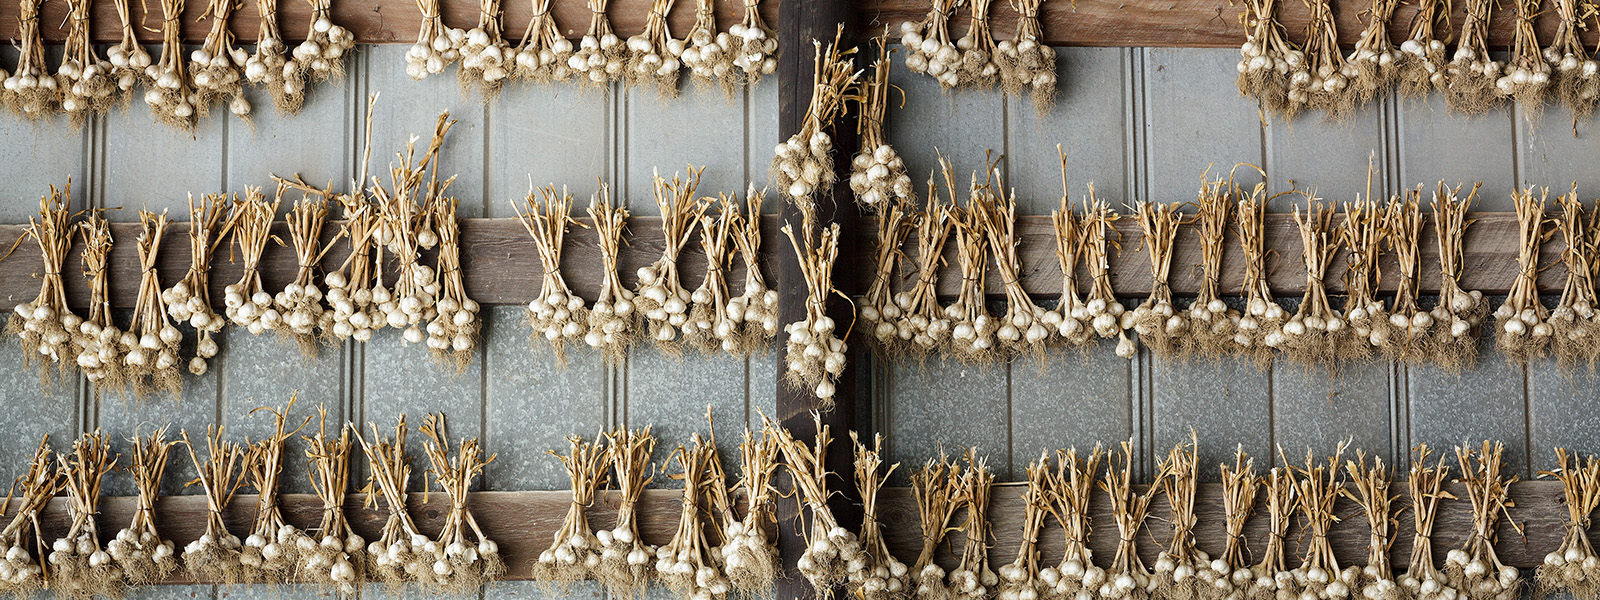 Garlic drying, Schoharie